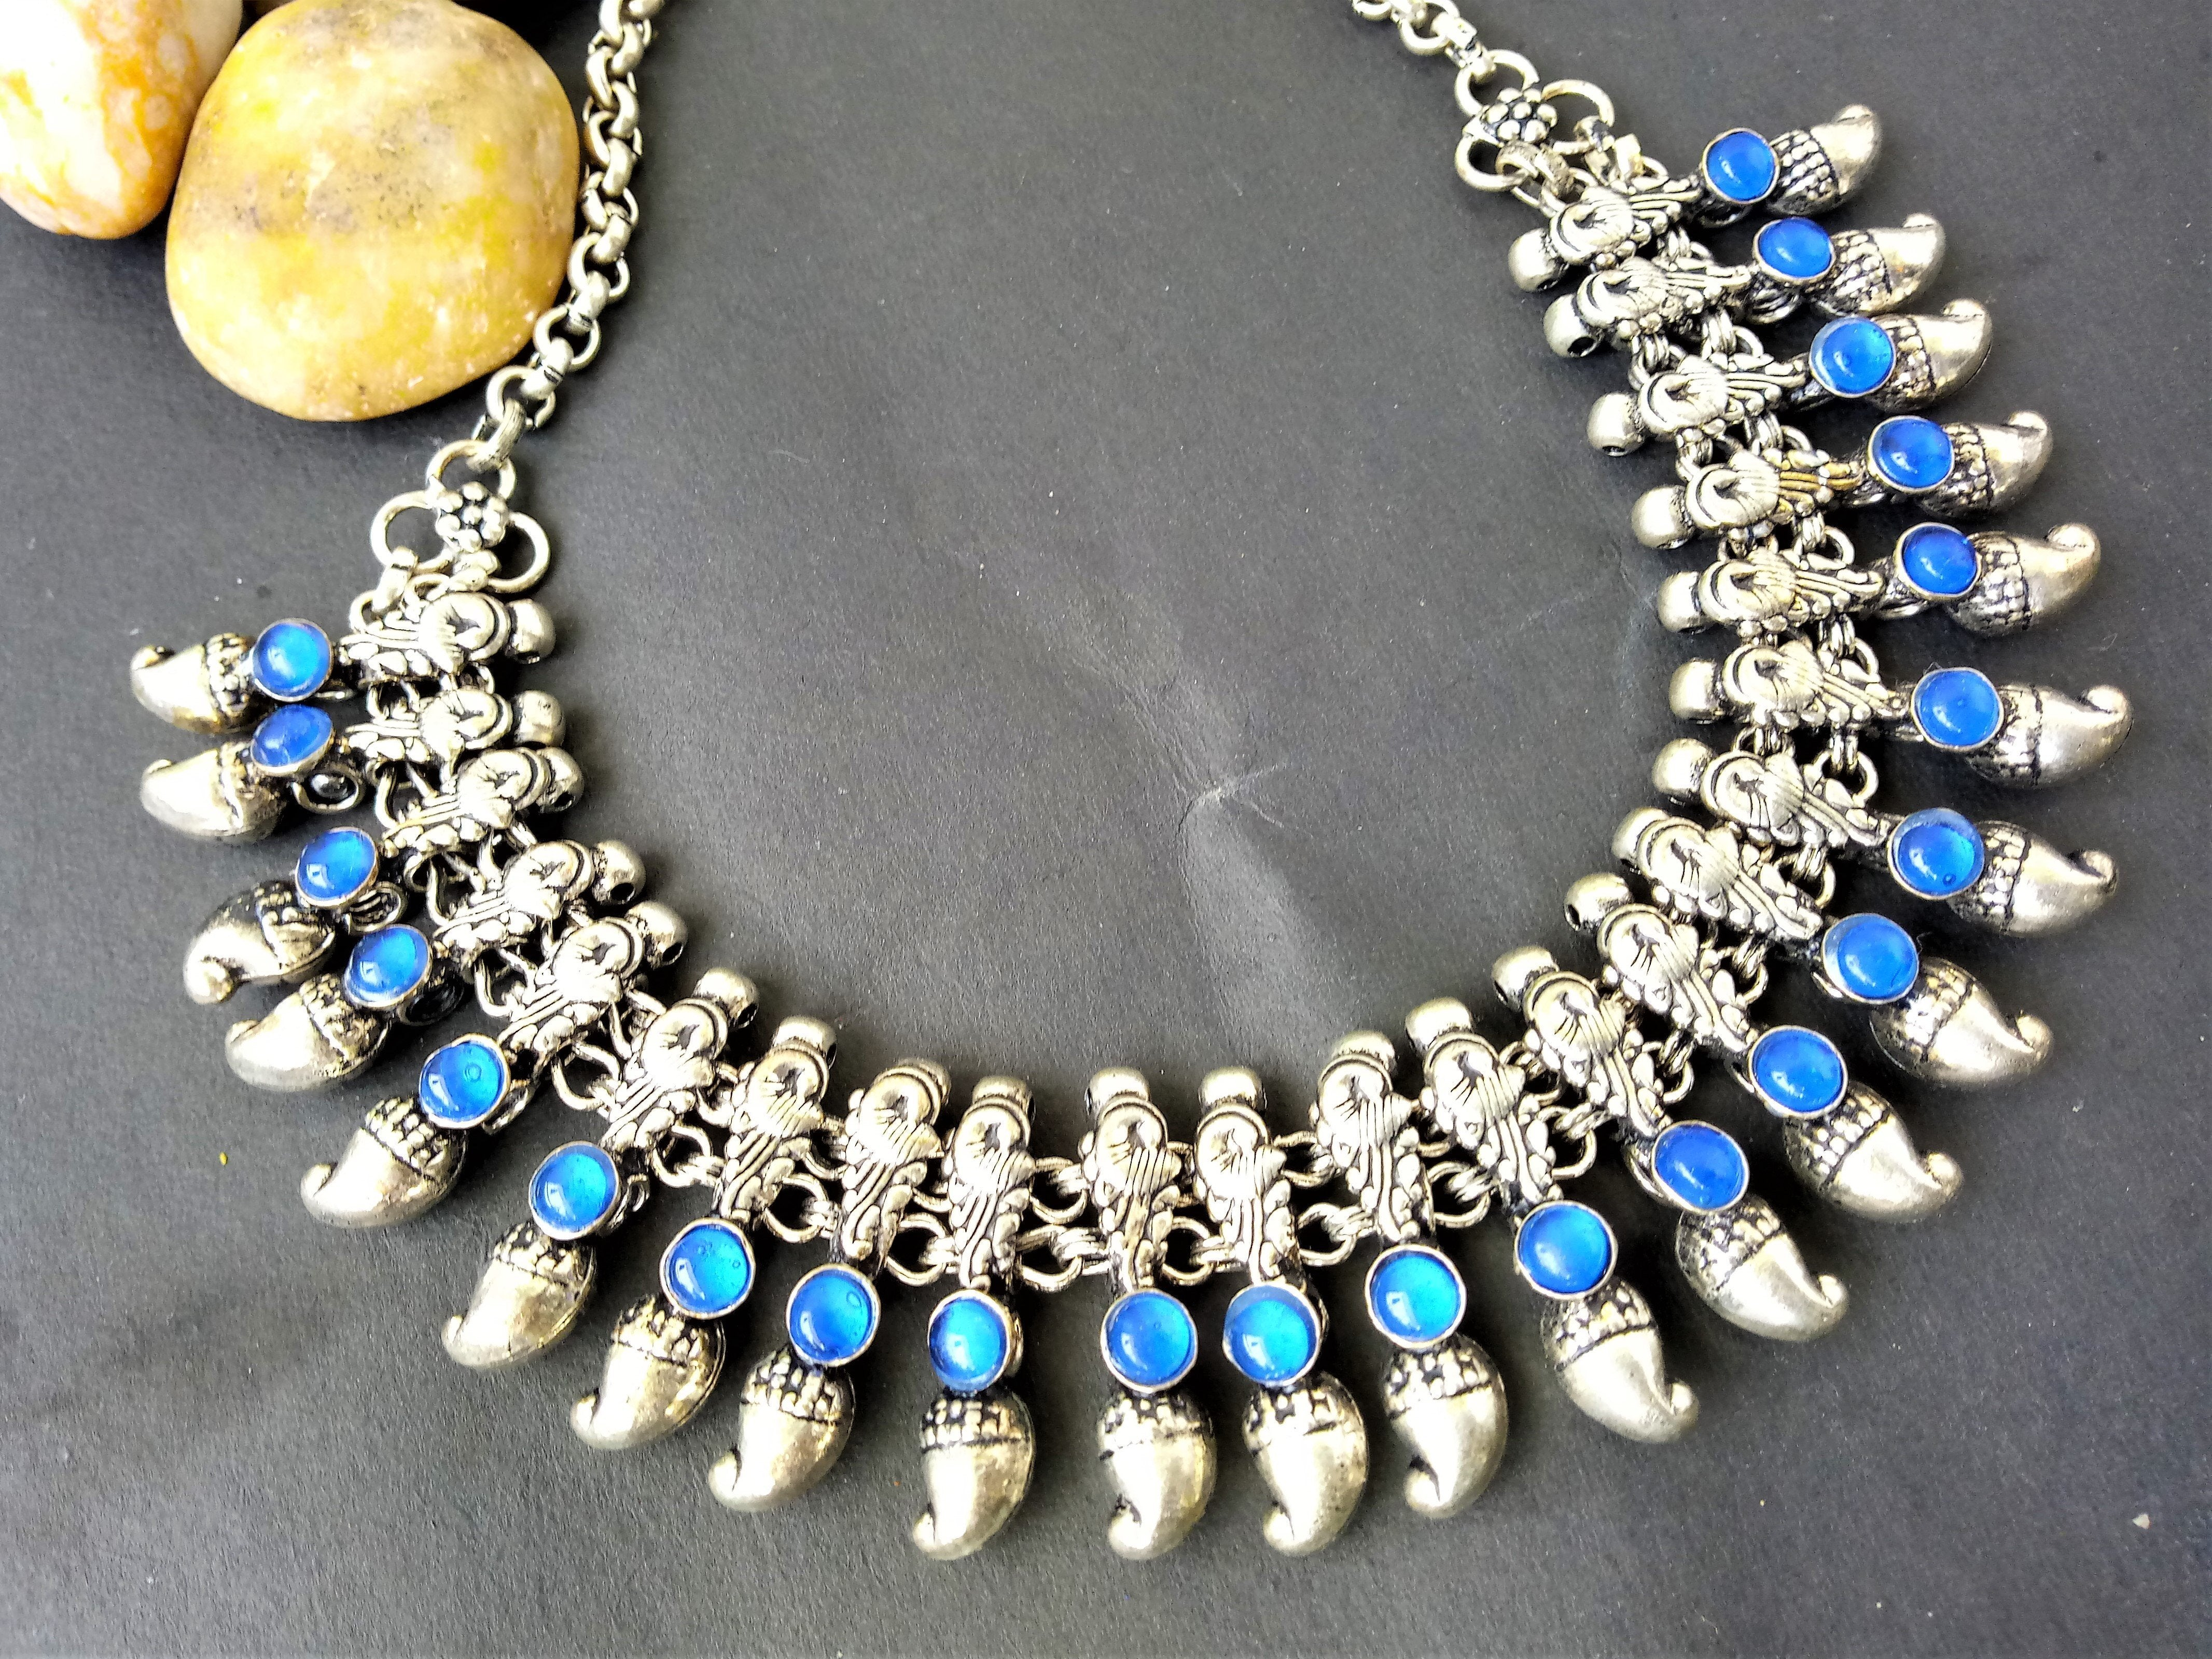 Blue German Silver Stone Necklace